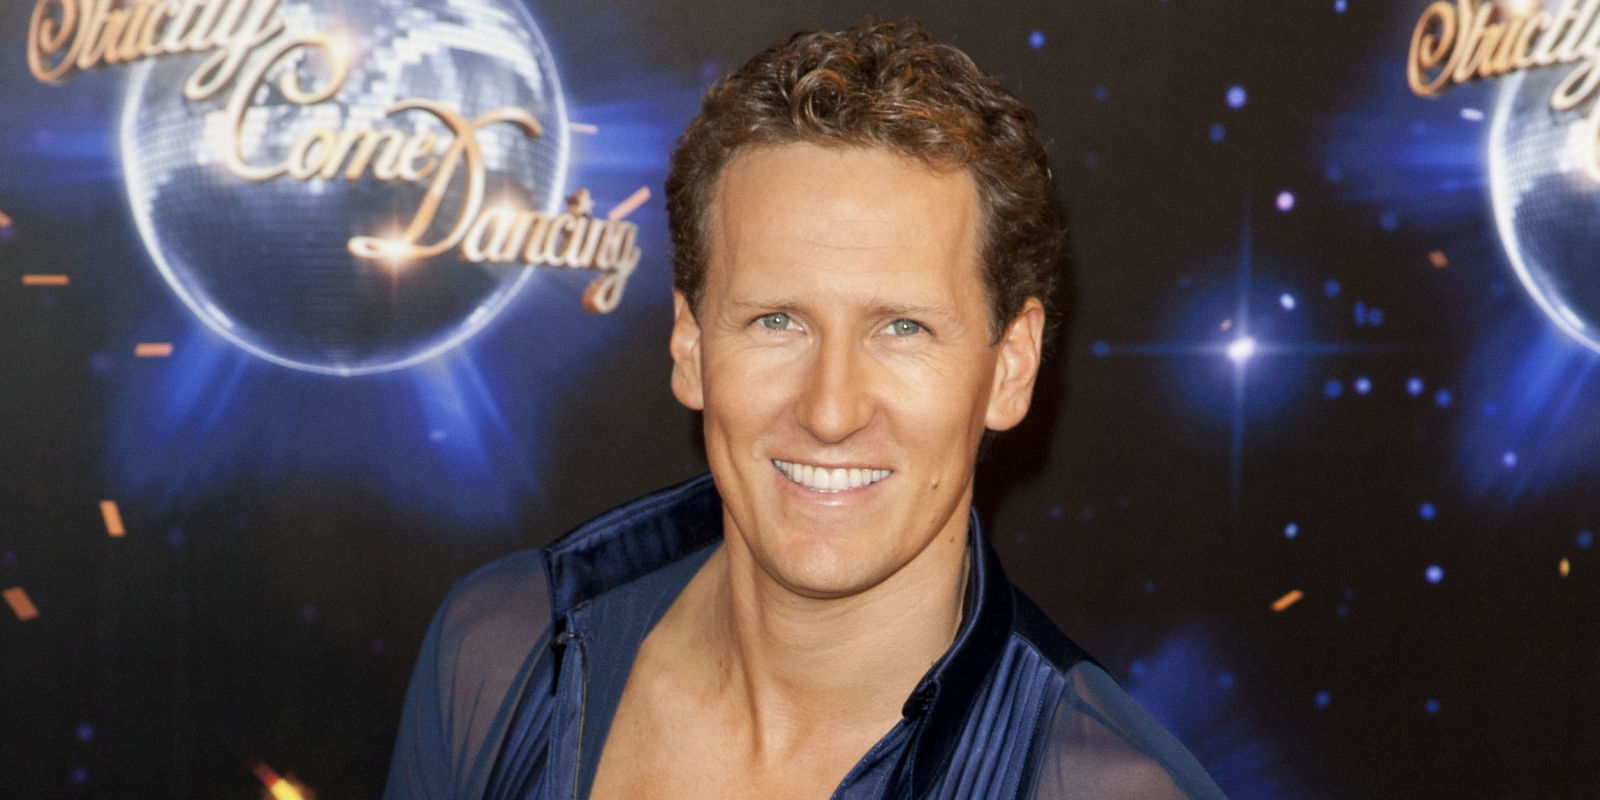 I'm Not A Patronising Person': Brendan Cole Admits Regret Over Argument With Strictly's Shirley I'm Not A Patronising Person': Brendan Cole Admits Regret Over Argument With Strictly's Shirley new picture